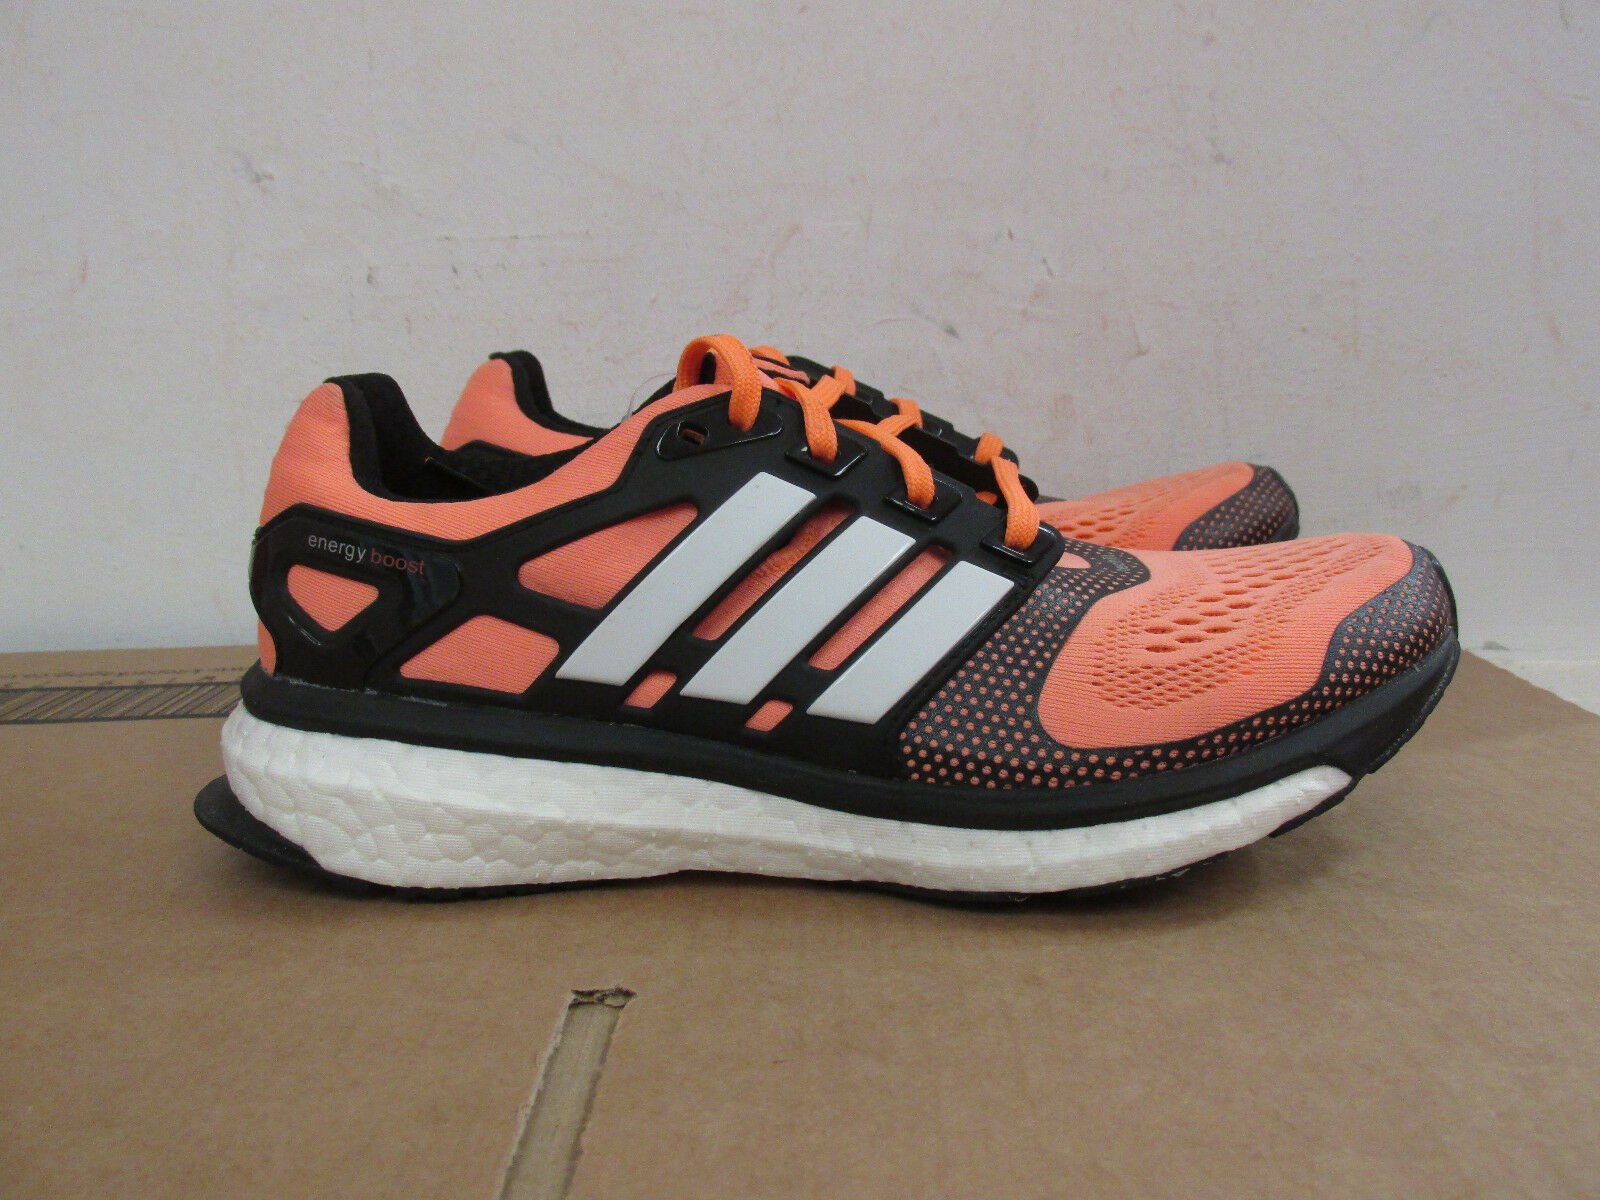 Adidas Energy Boost Esm Womens Running B40903 Trainers B40903 Running CLEARANCE 0ef182